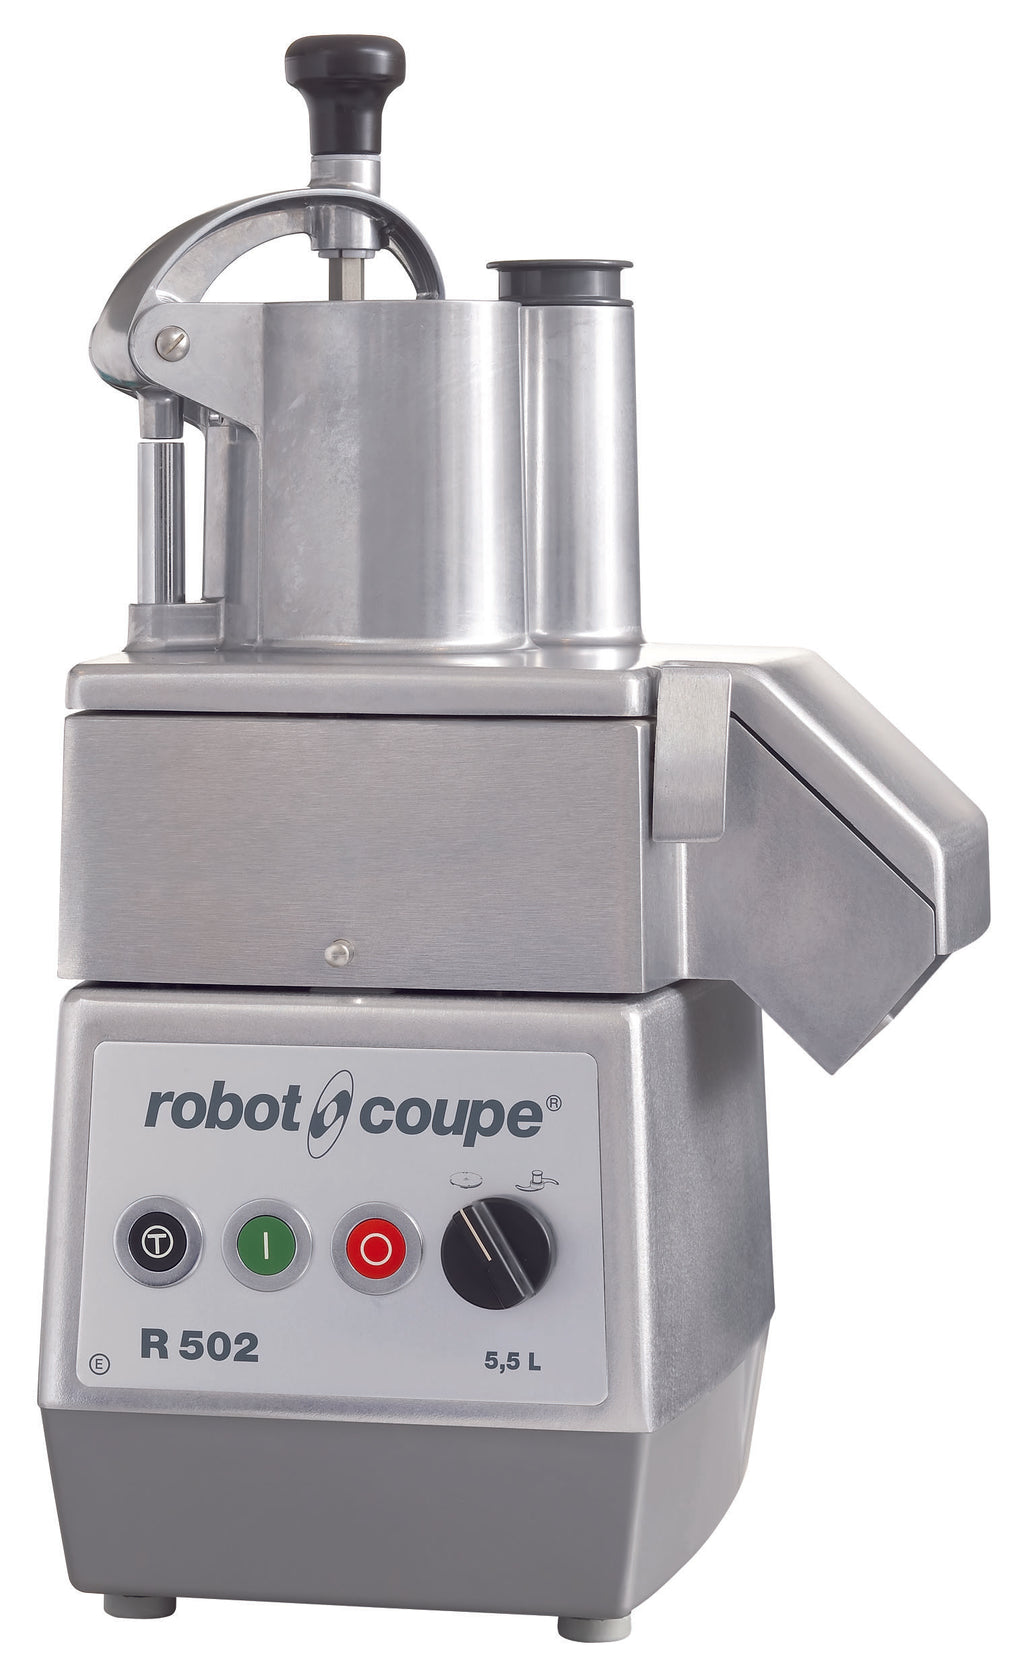 Robot Coupe R 502  Cutter & Vegetable slicer